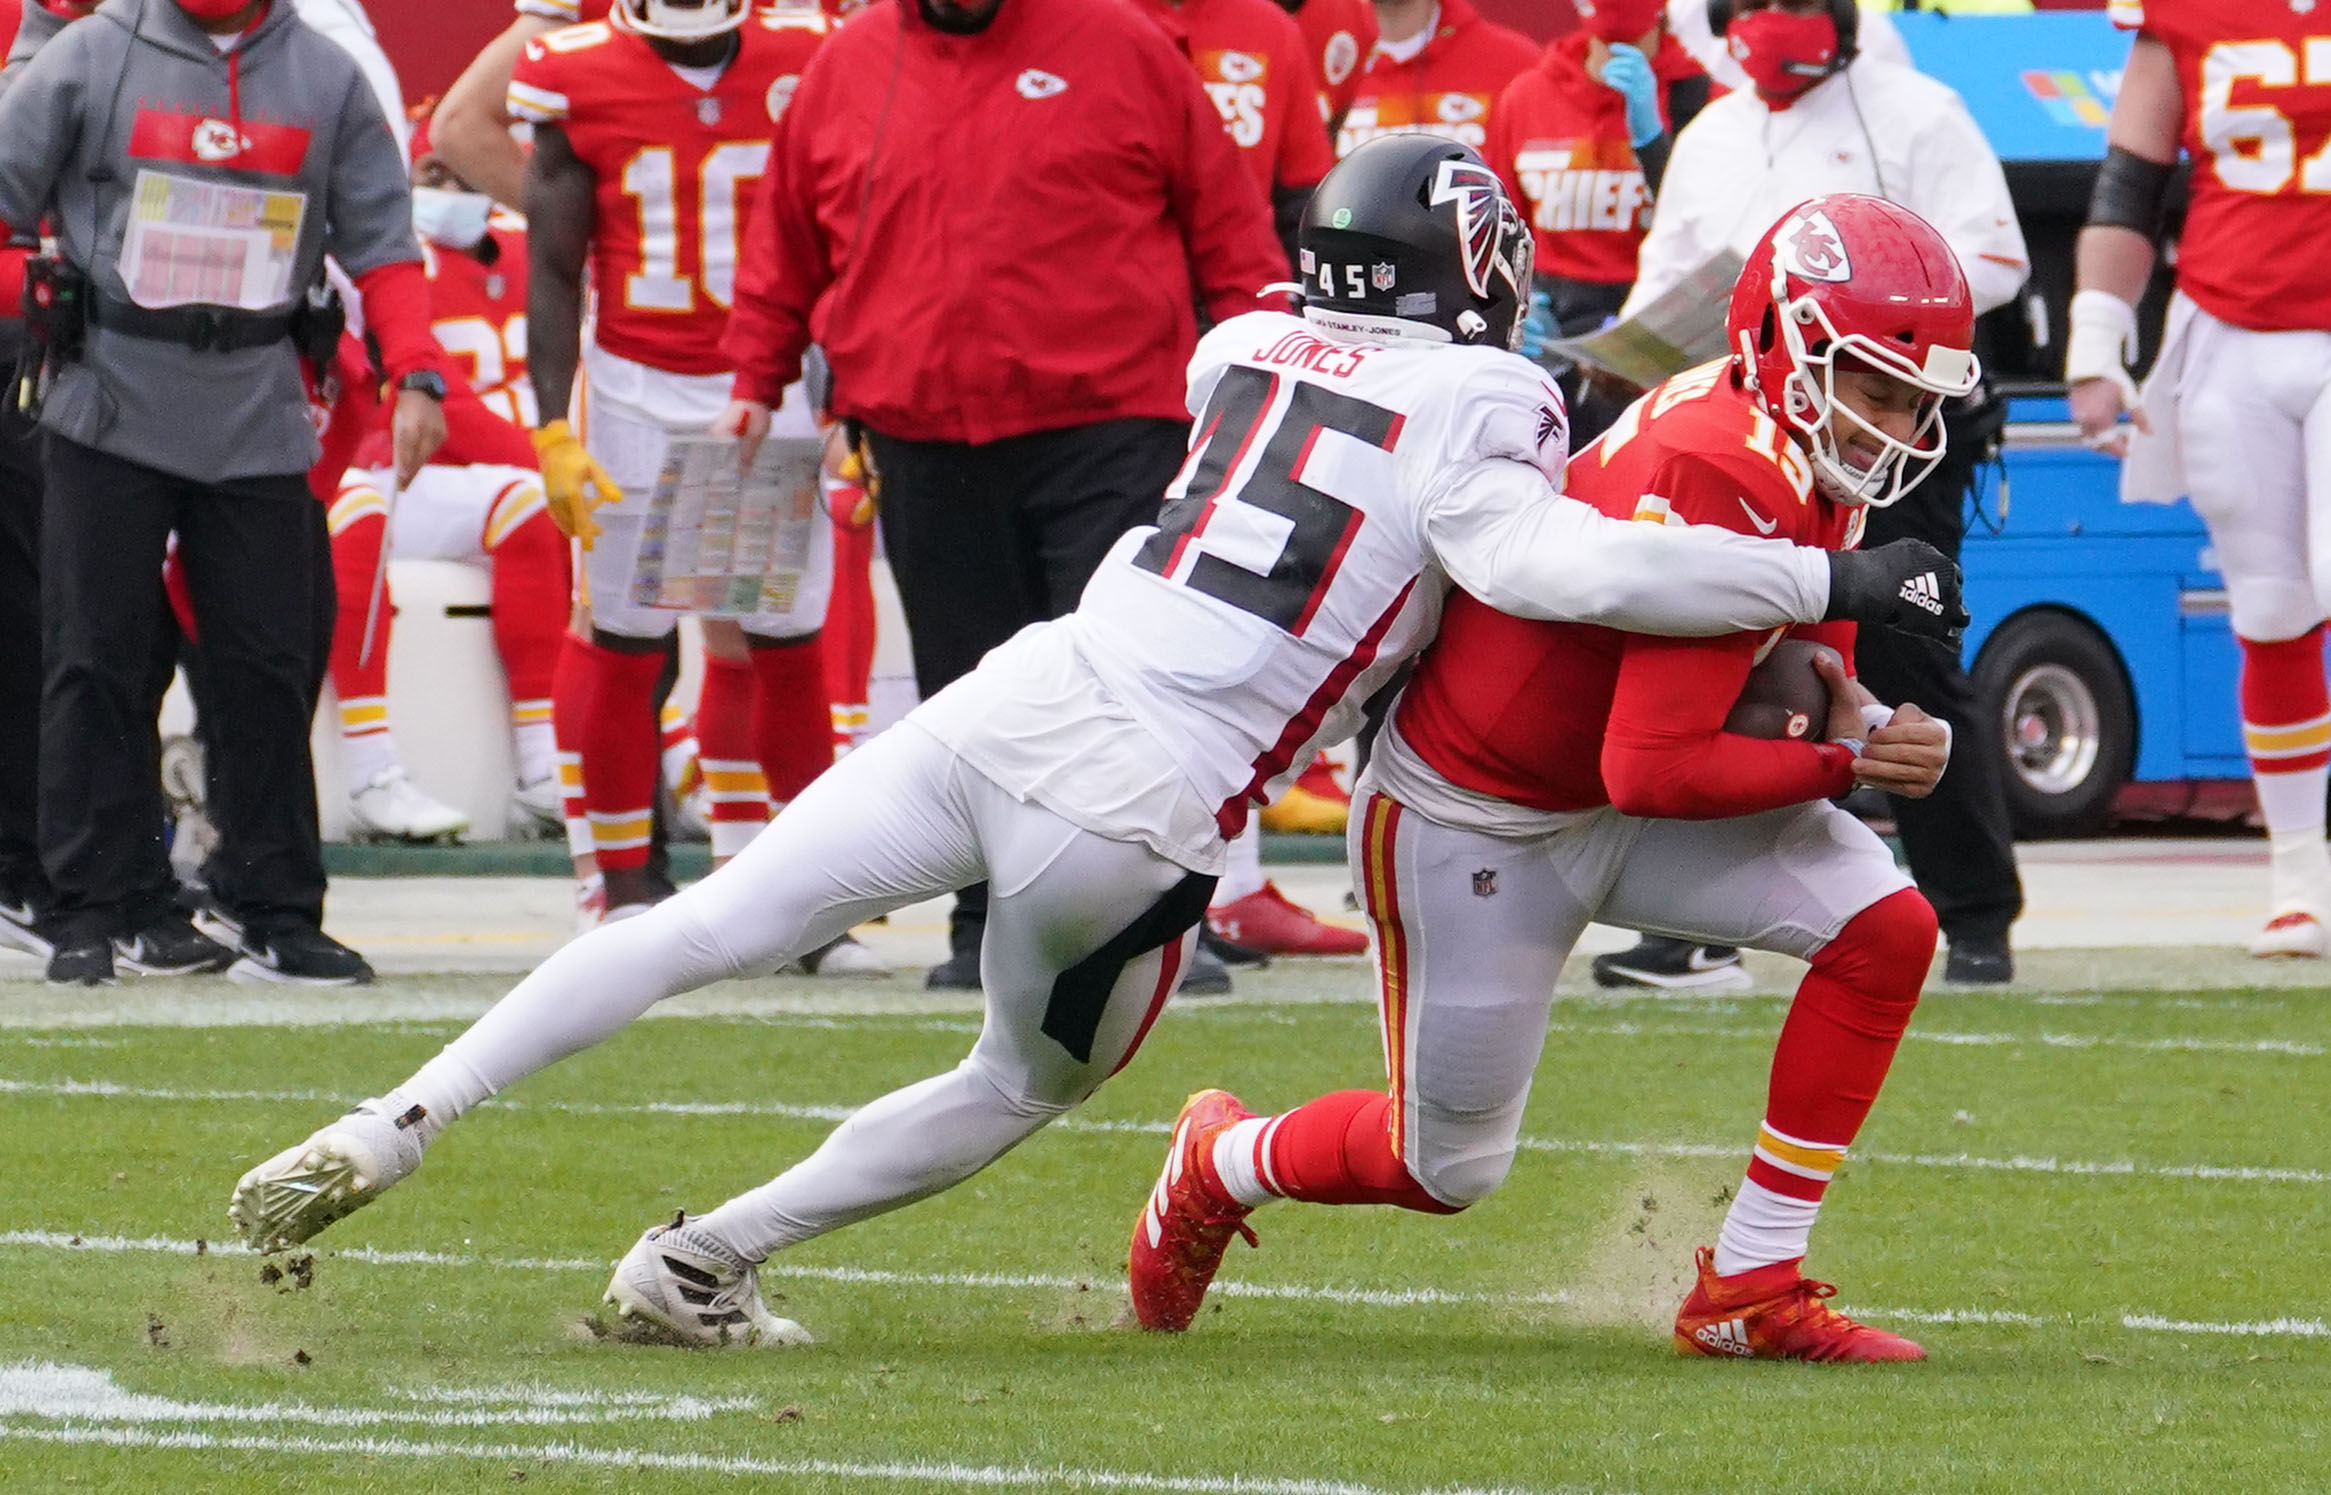 NFL: Atlanta Falcons at Kansas City Chiefs